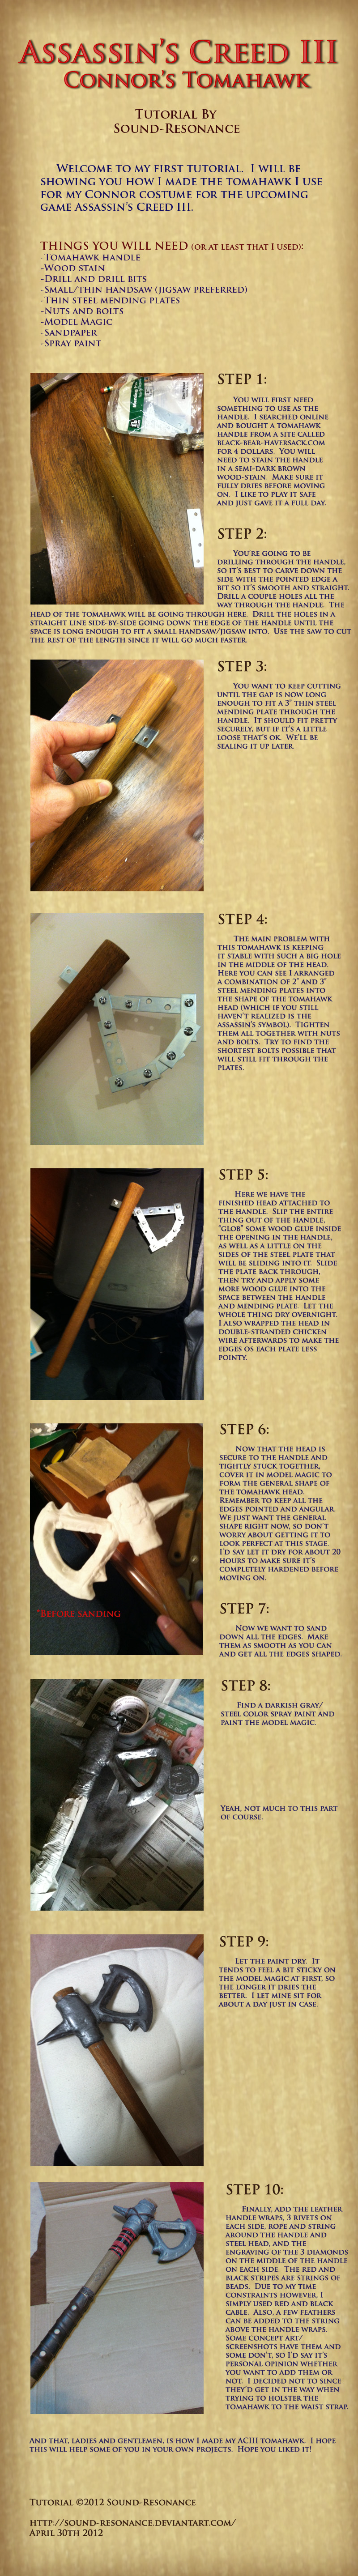 Tutorial: Assassin's Creed 3: Connor's Tomahawk by Sound-Resonance